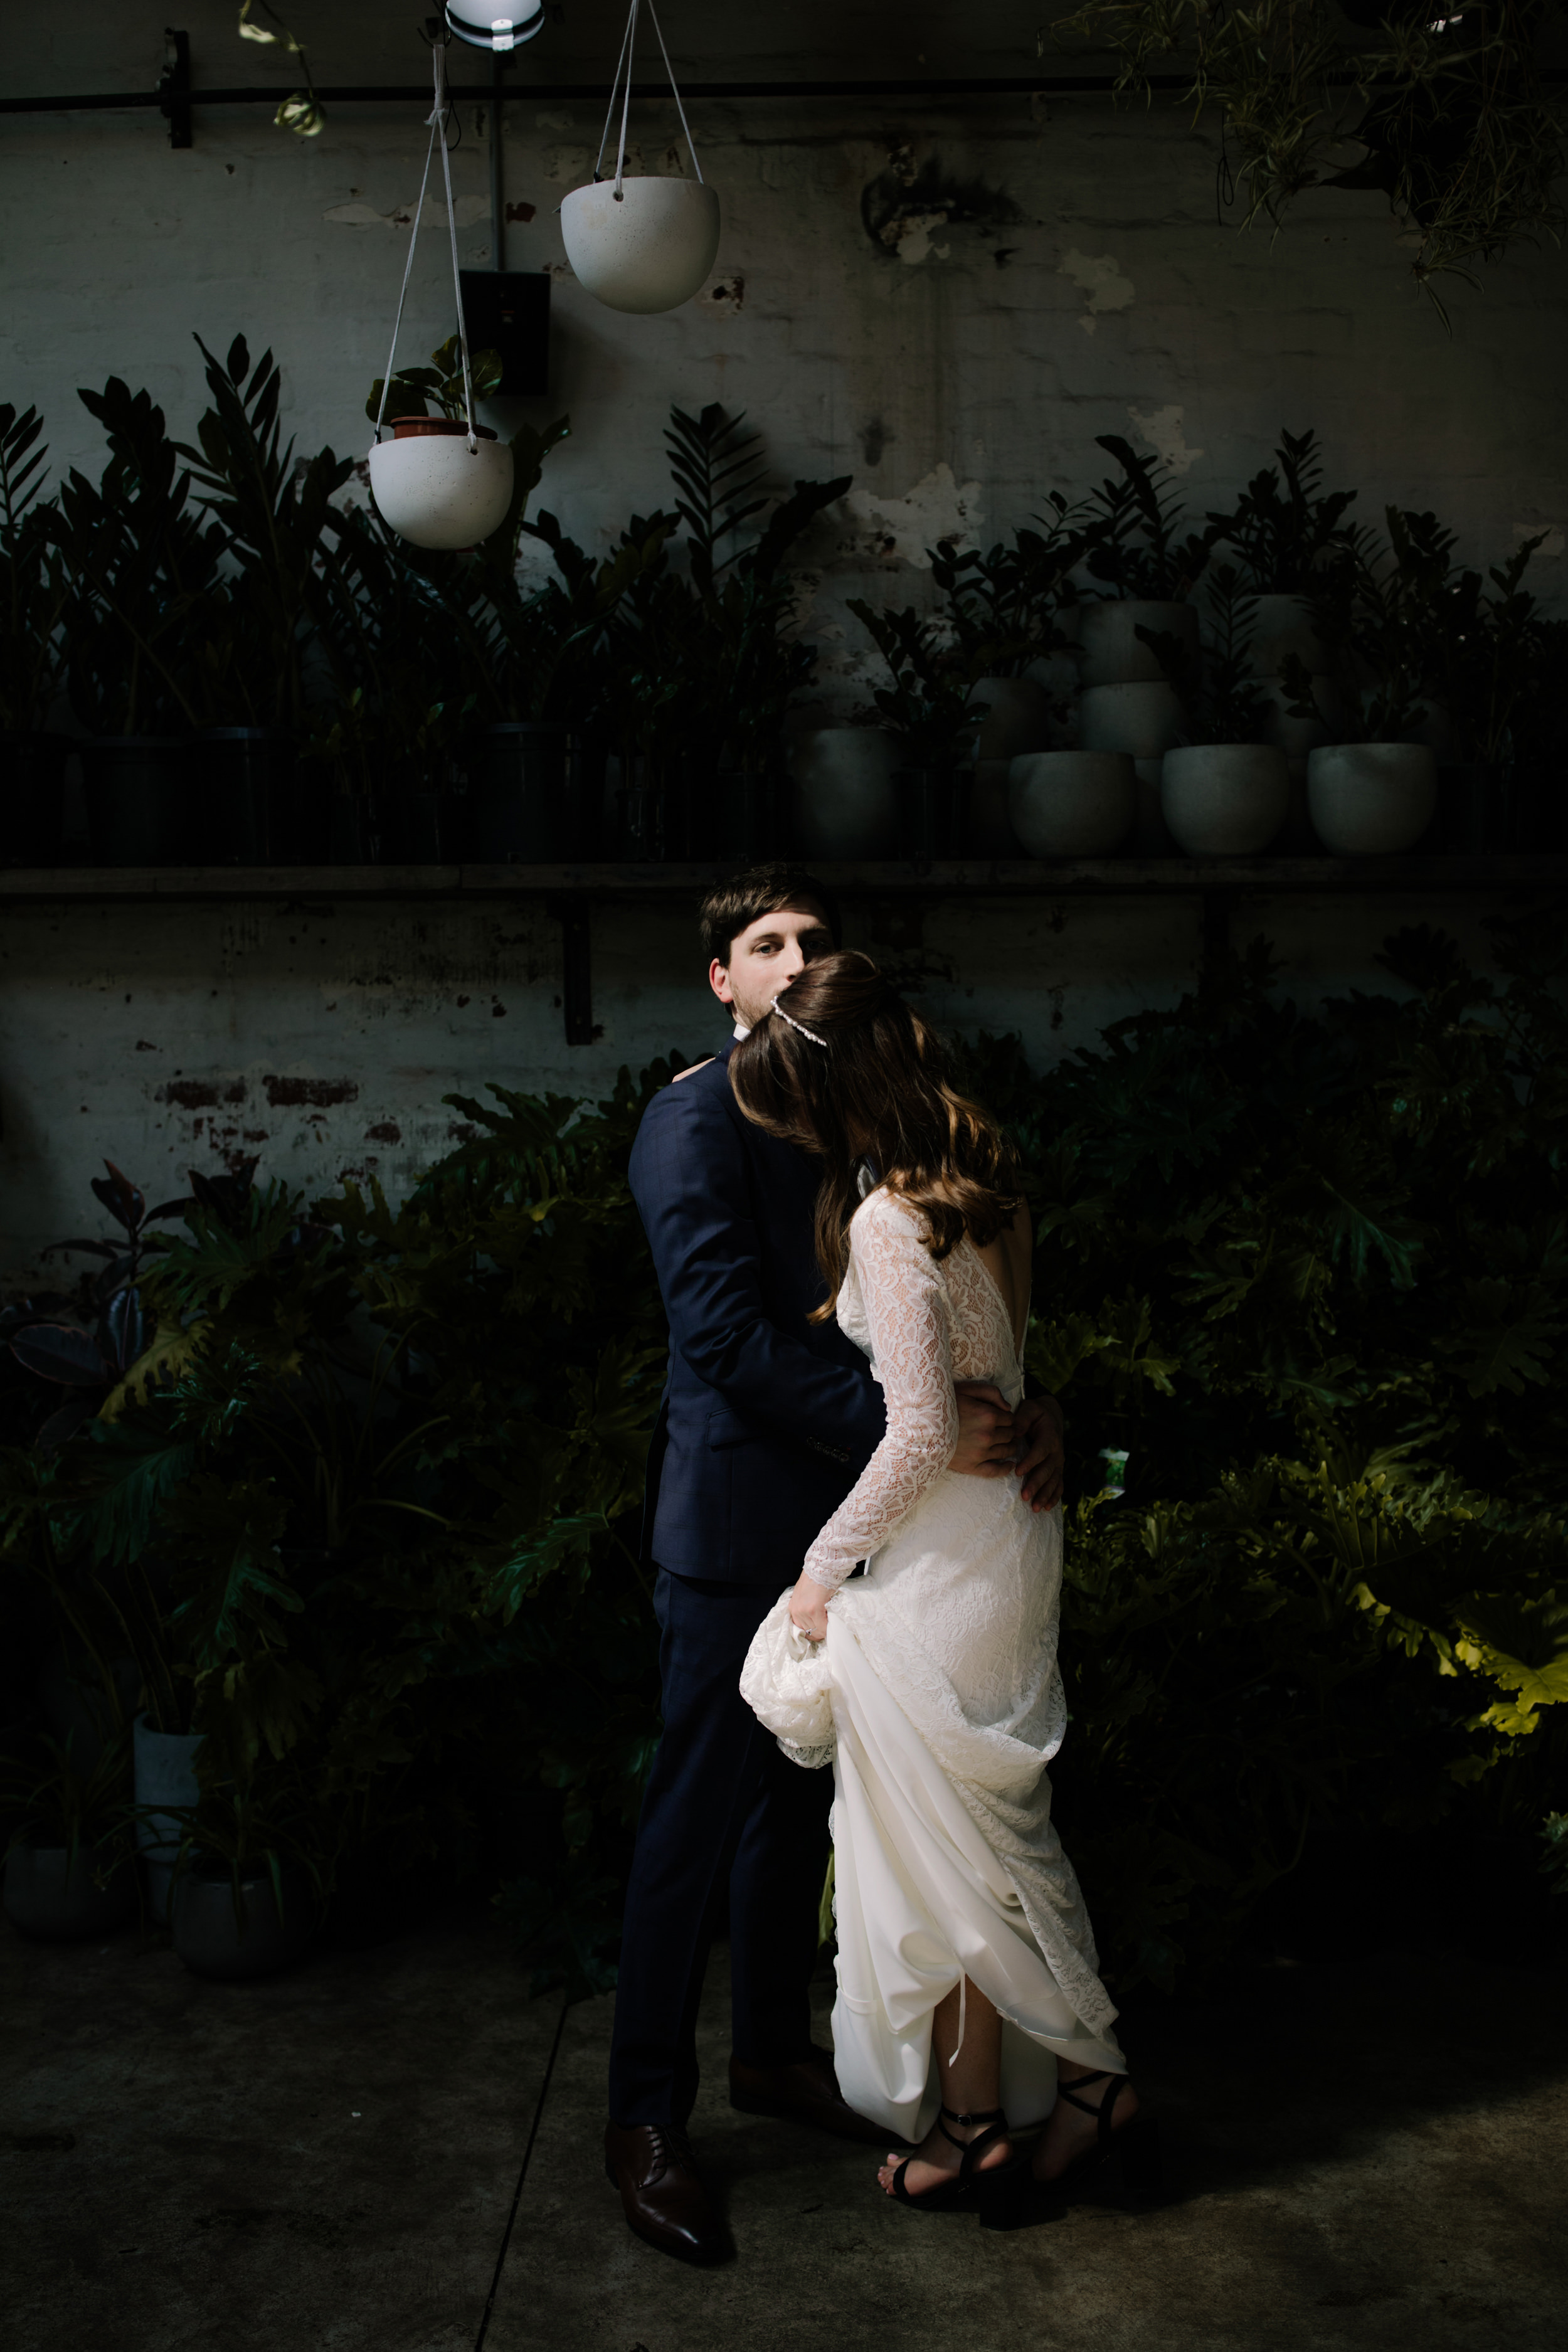 I_Got_You_Babe_Weddings_Emily_Matt_Rupert_Glasshaus_Melbourne0036.JPG